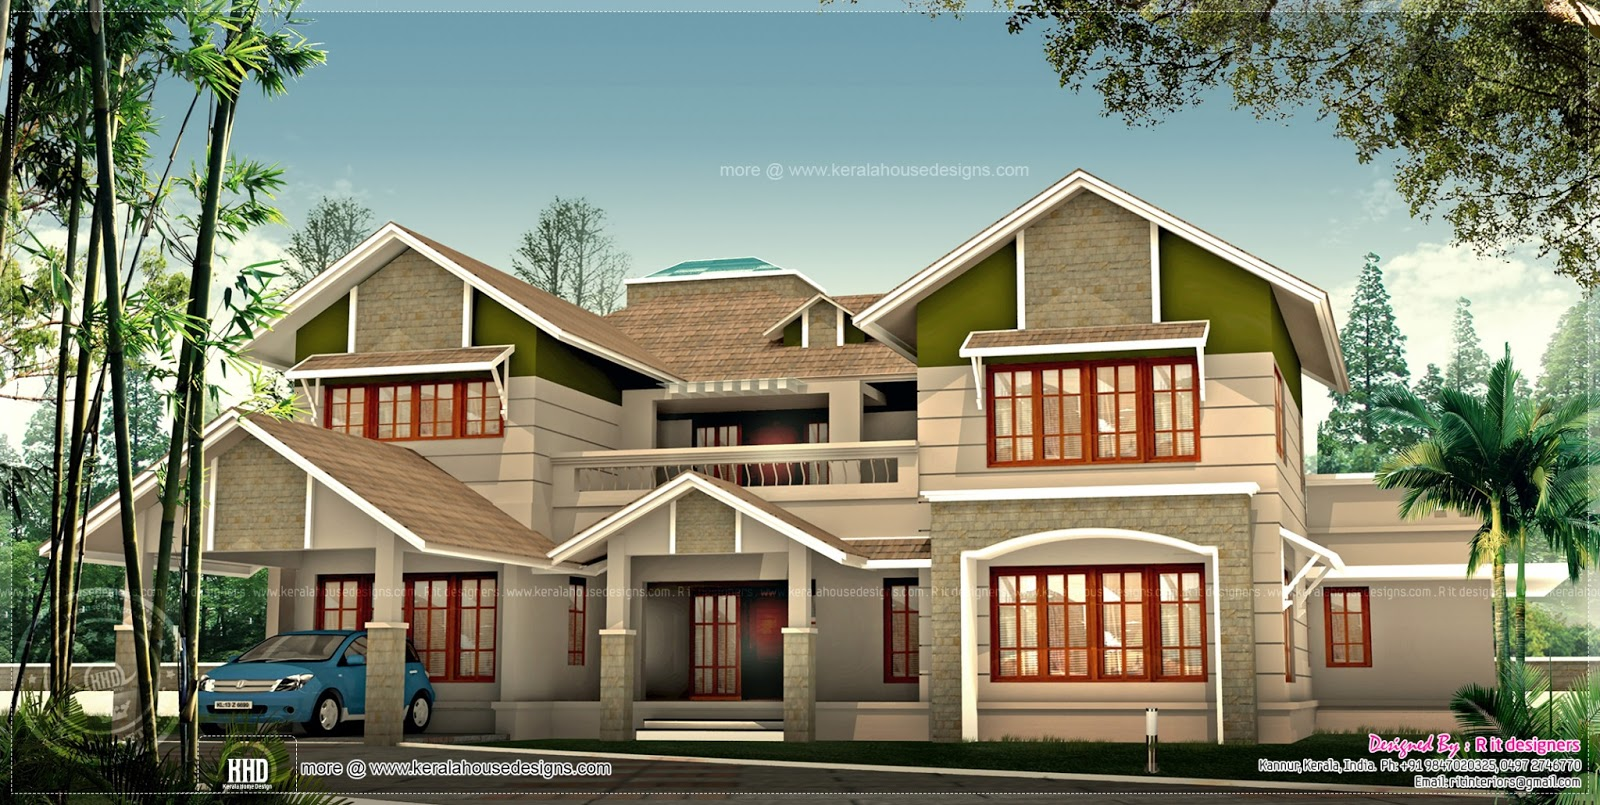 Exterior design of 4050 sq ft house kerala home design for 450 square foot house